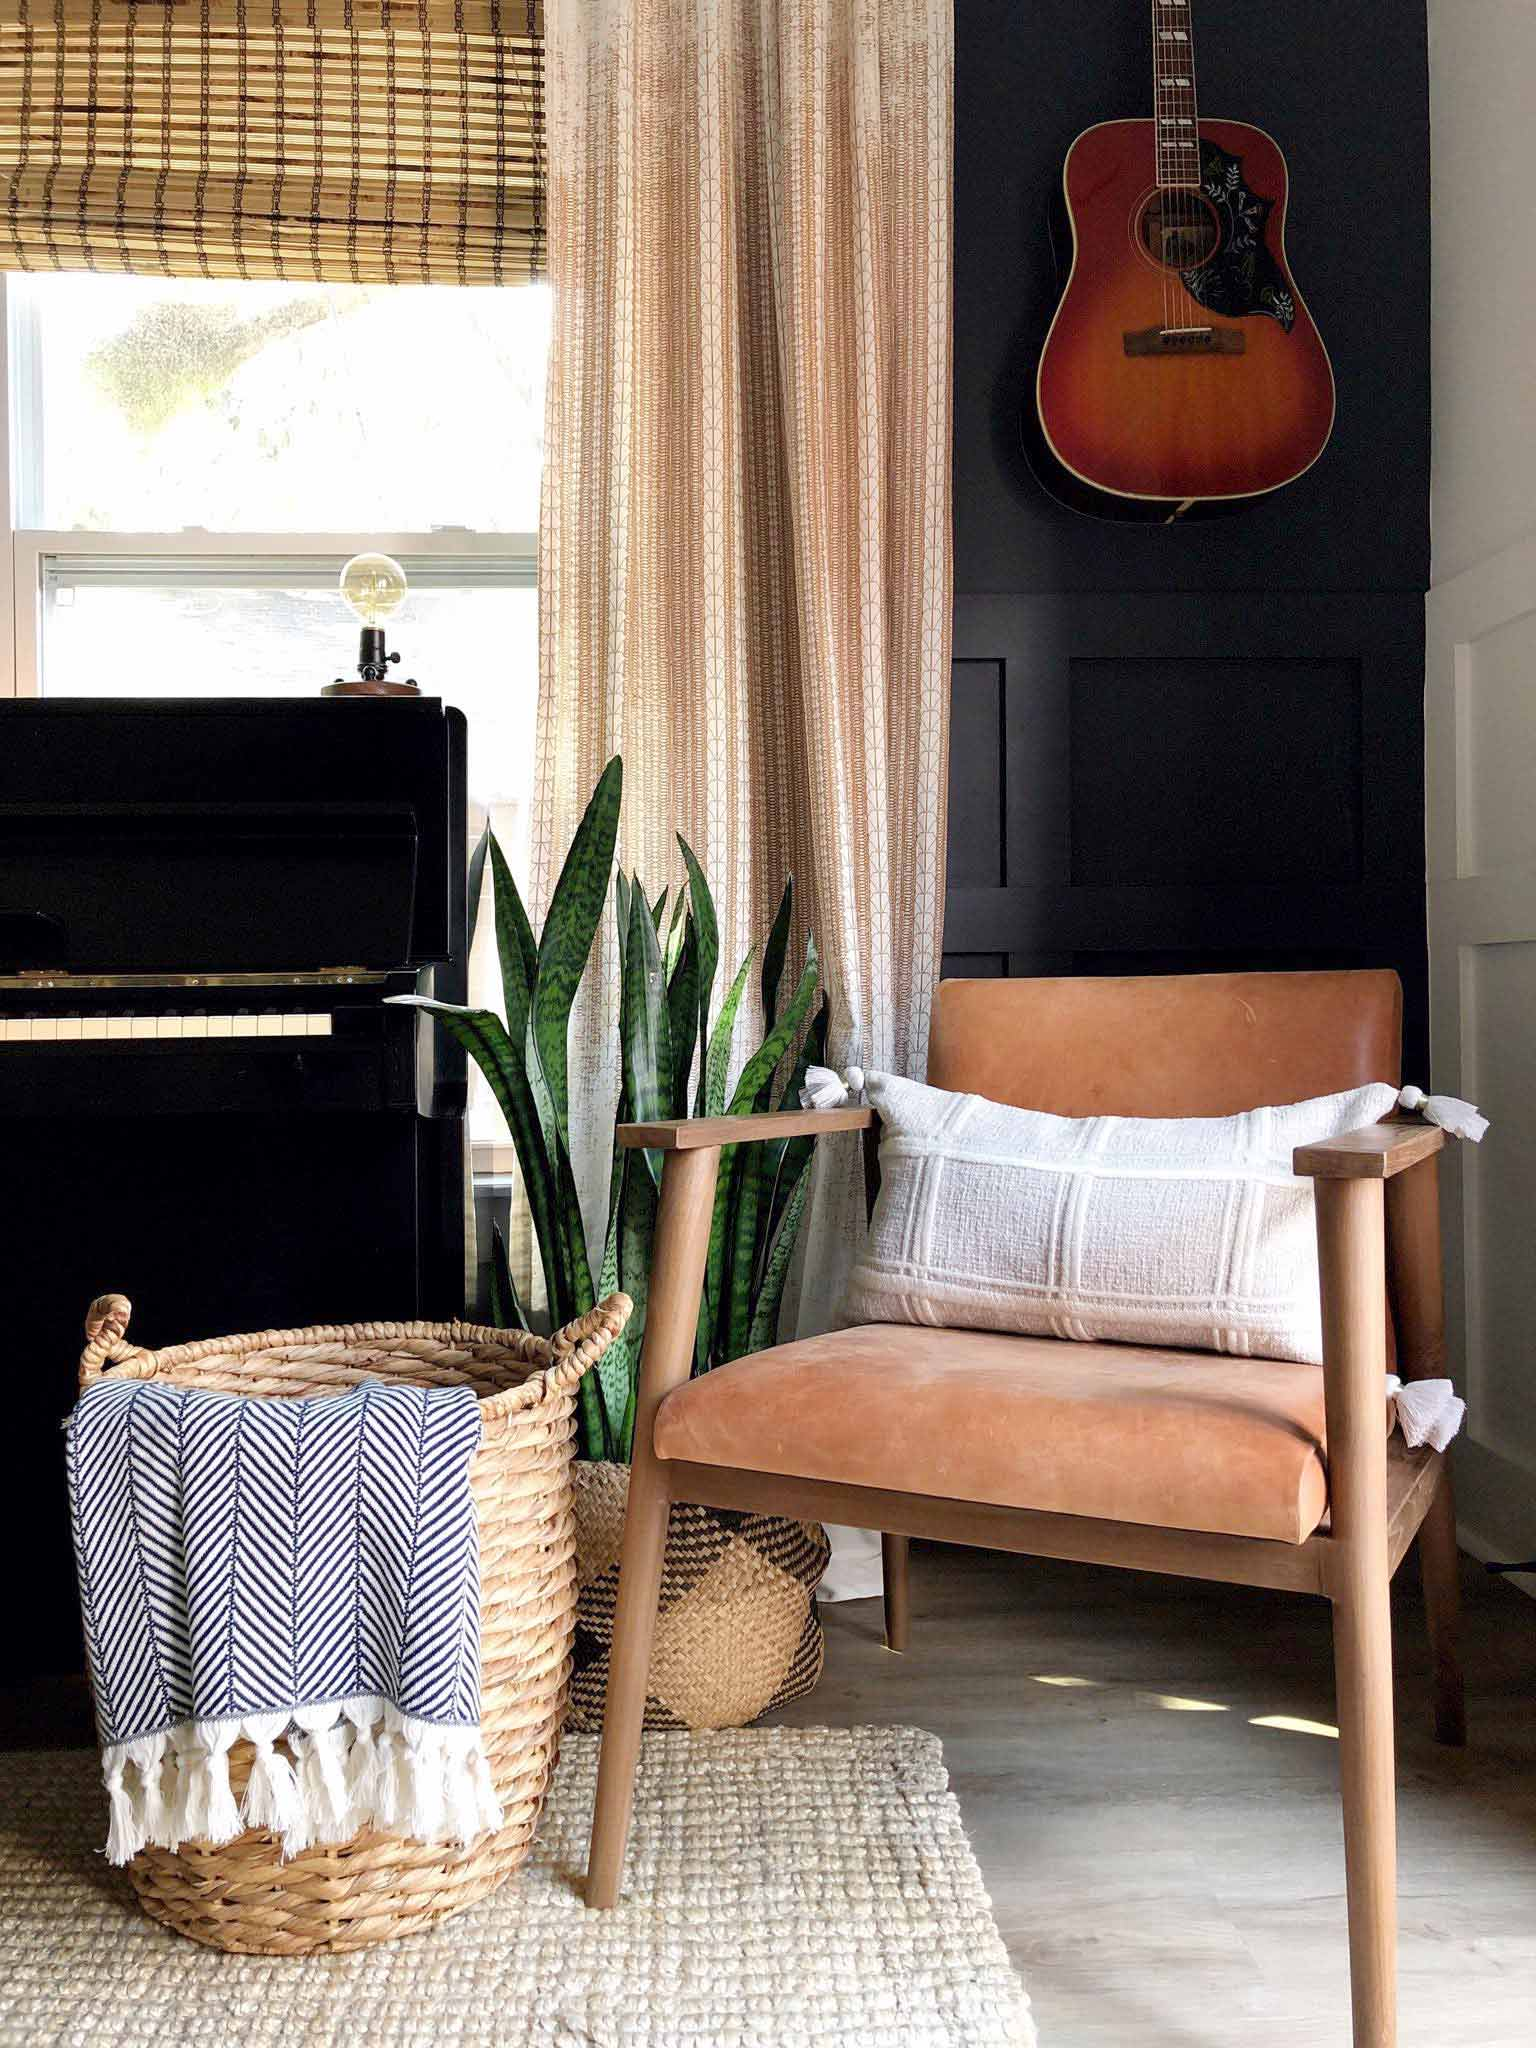 chair in corner with guitar on the wall